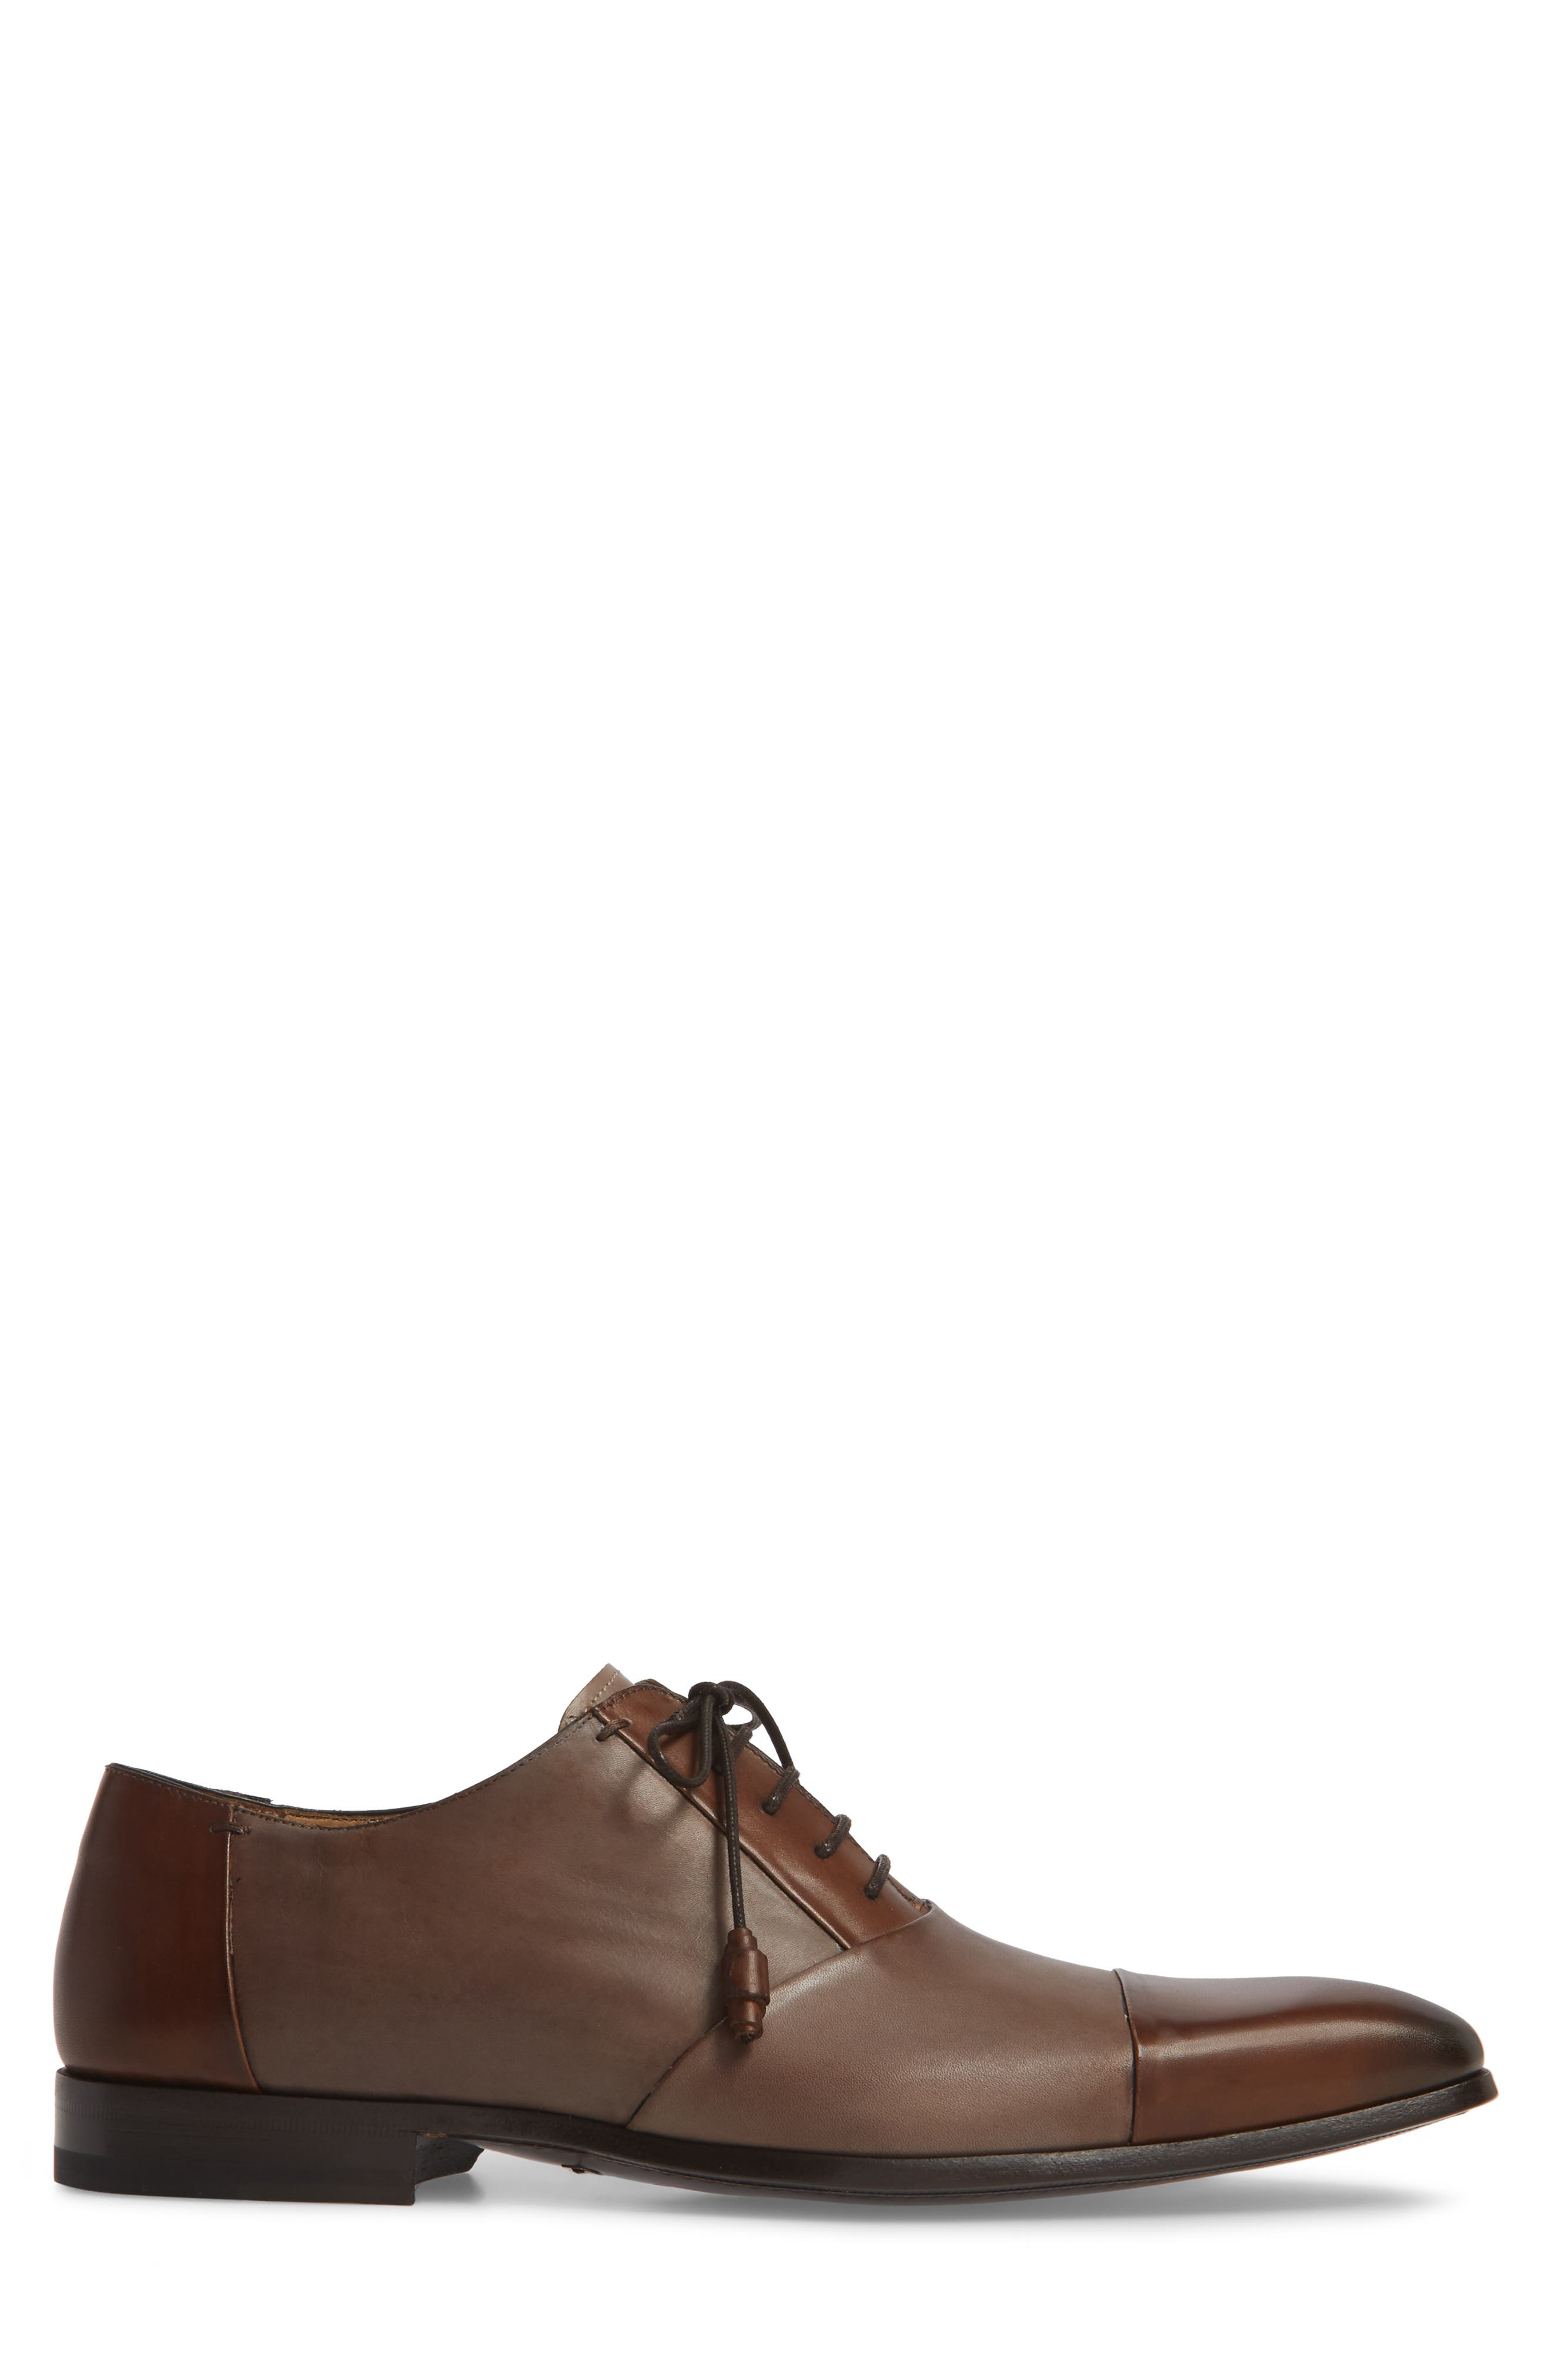 Julius Spectator Oxford,                             Alternate thumbnail 3, color,                             Cognac/ Taupe Leather